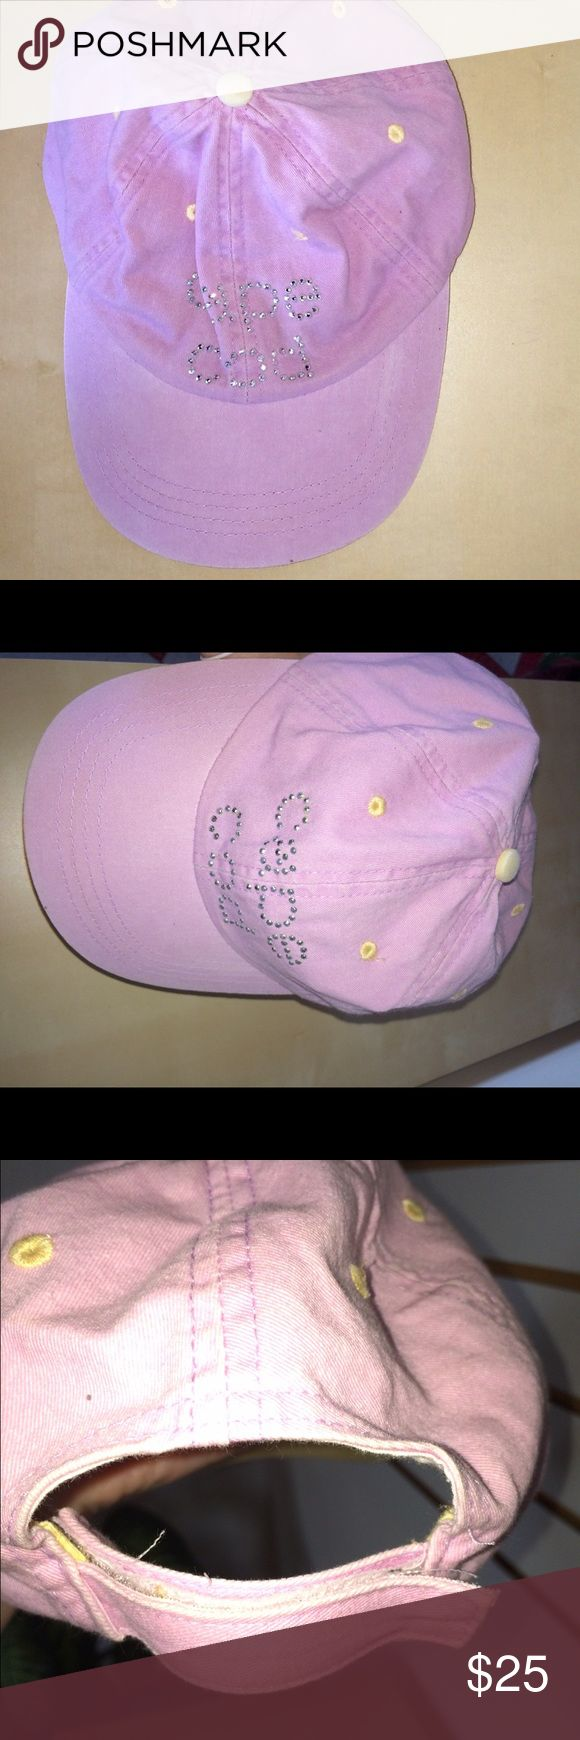 "EUC CAPE COD LAVENDER HAT Pastel purple hat baseball cap/ spells out ""CAPE COD"" in  sparkly silver letters. Only worn 3 x's. Purchased at the Kennedy Estate on Cape Cod when Ted Kennedy was endorsing Duval Patrick for governor of Massachusetts Accessories Hats"